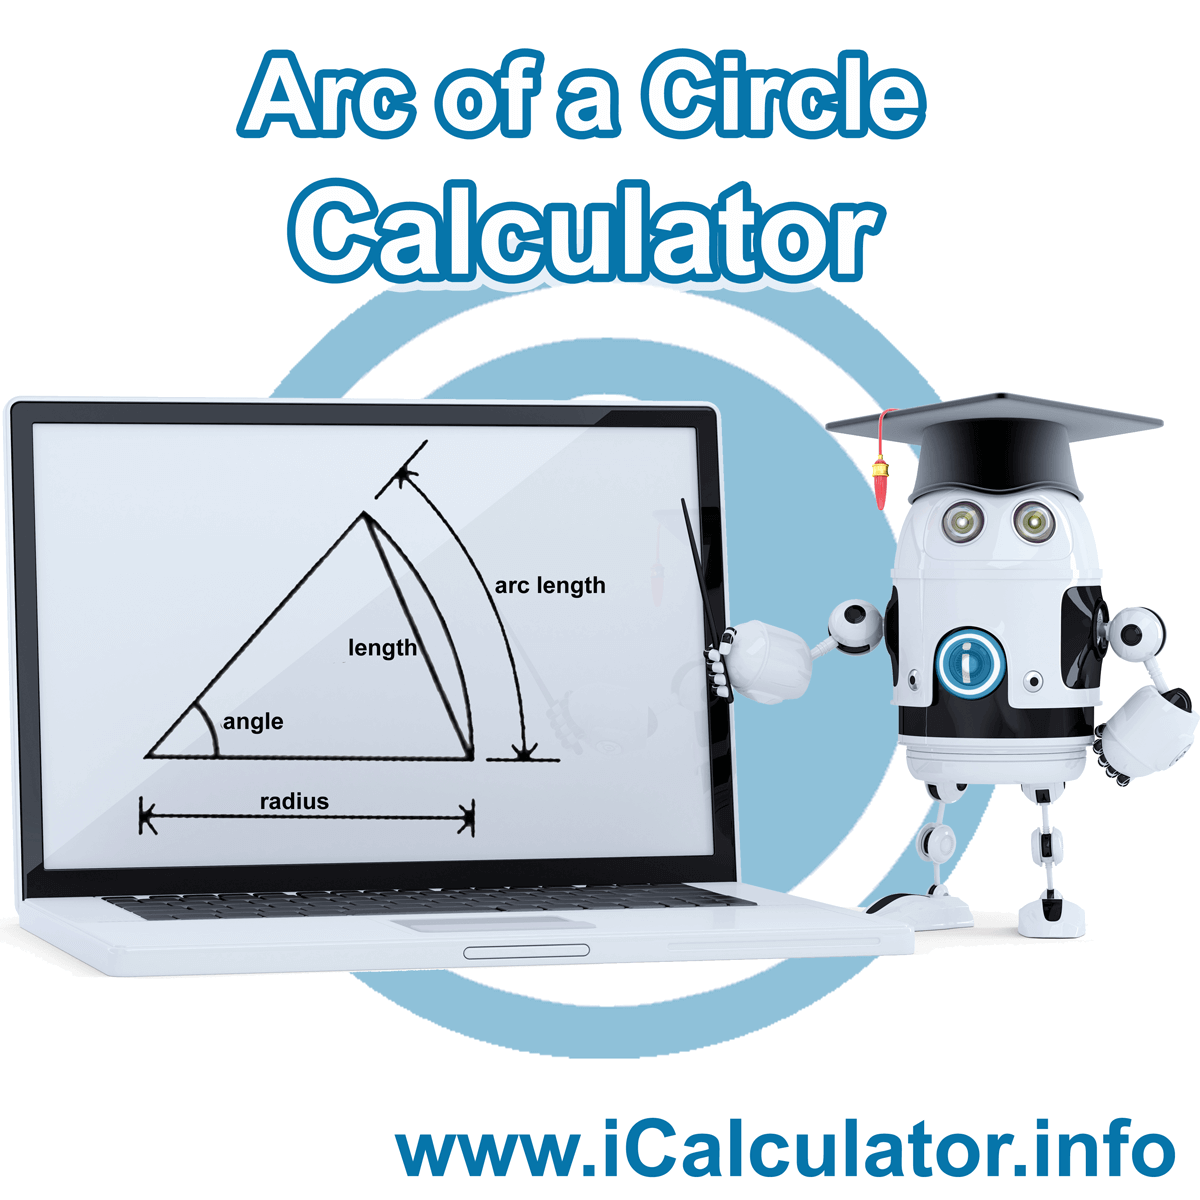 Arc of a circle calculator. This image shows an arc of a circle with associated calculations used by the Arc of a circle calculator